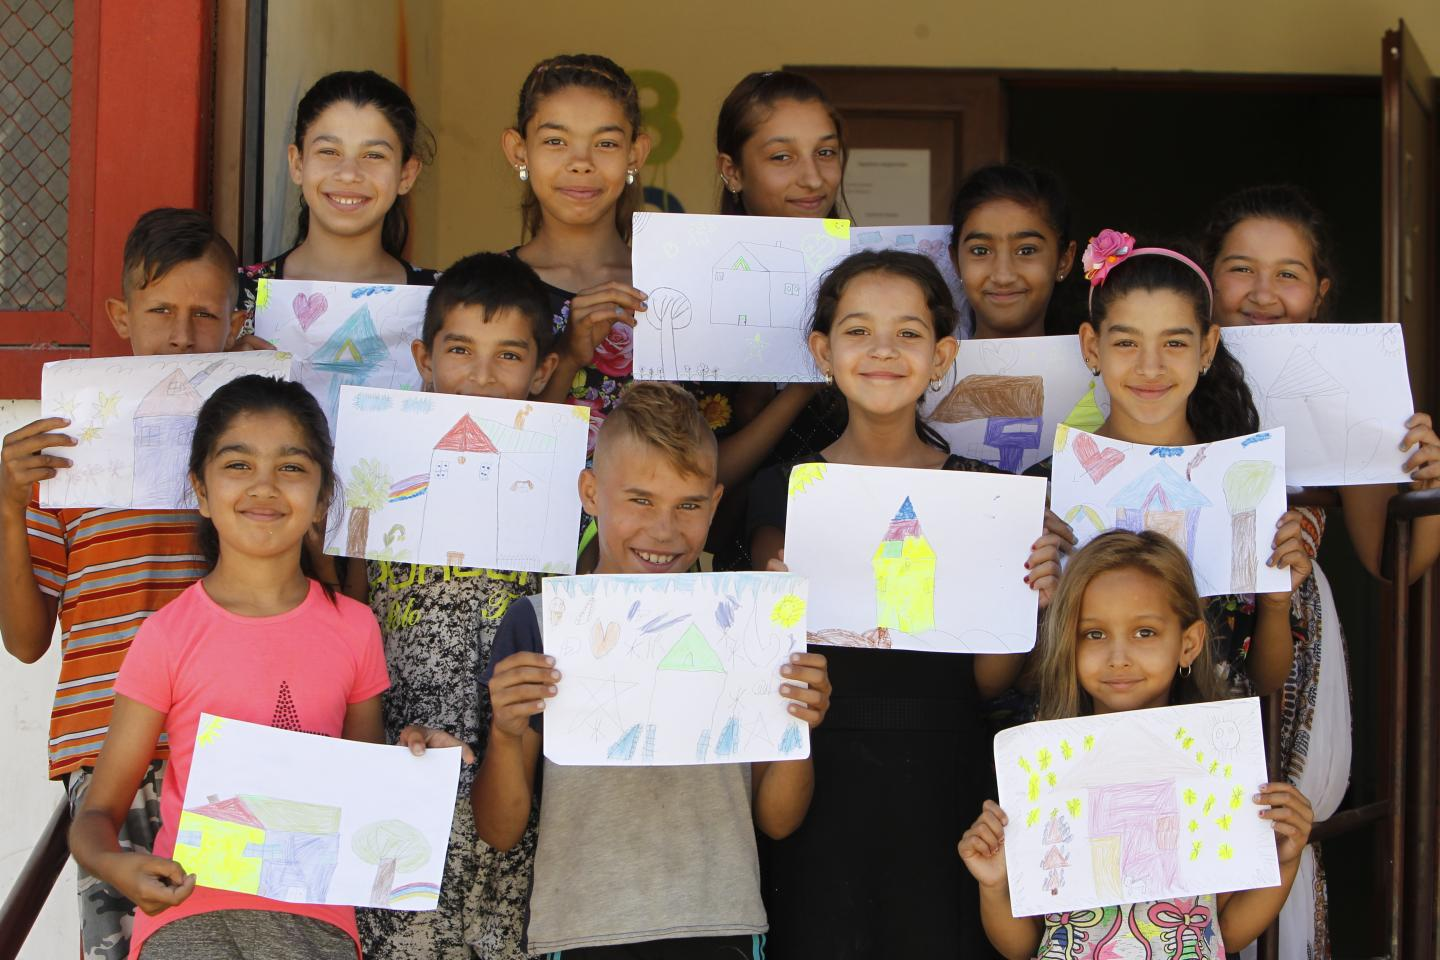 Children posing for picture holding drawings